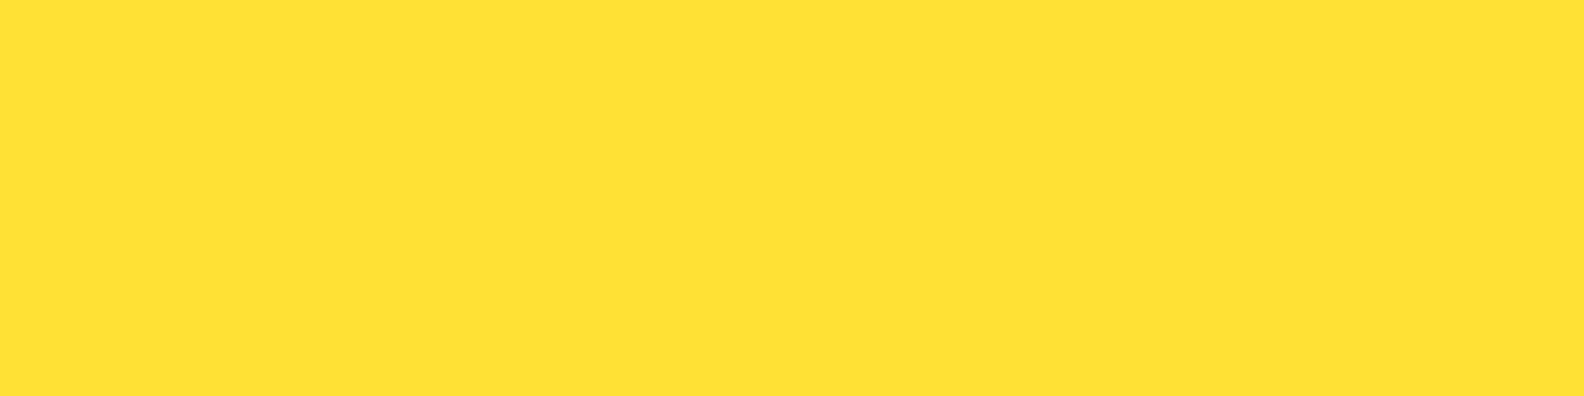 1584x396 Banana Yellow Solid Color Background